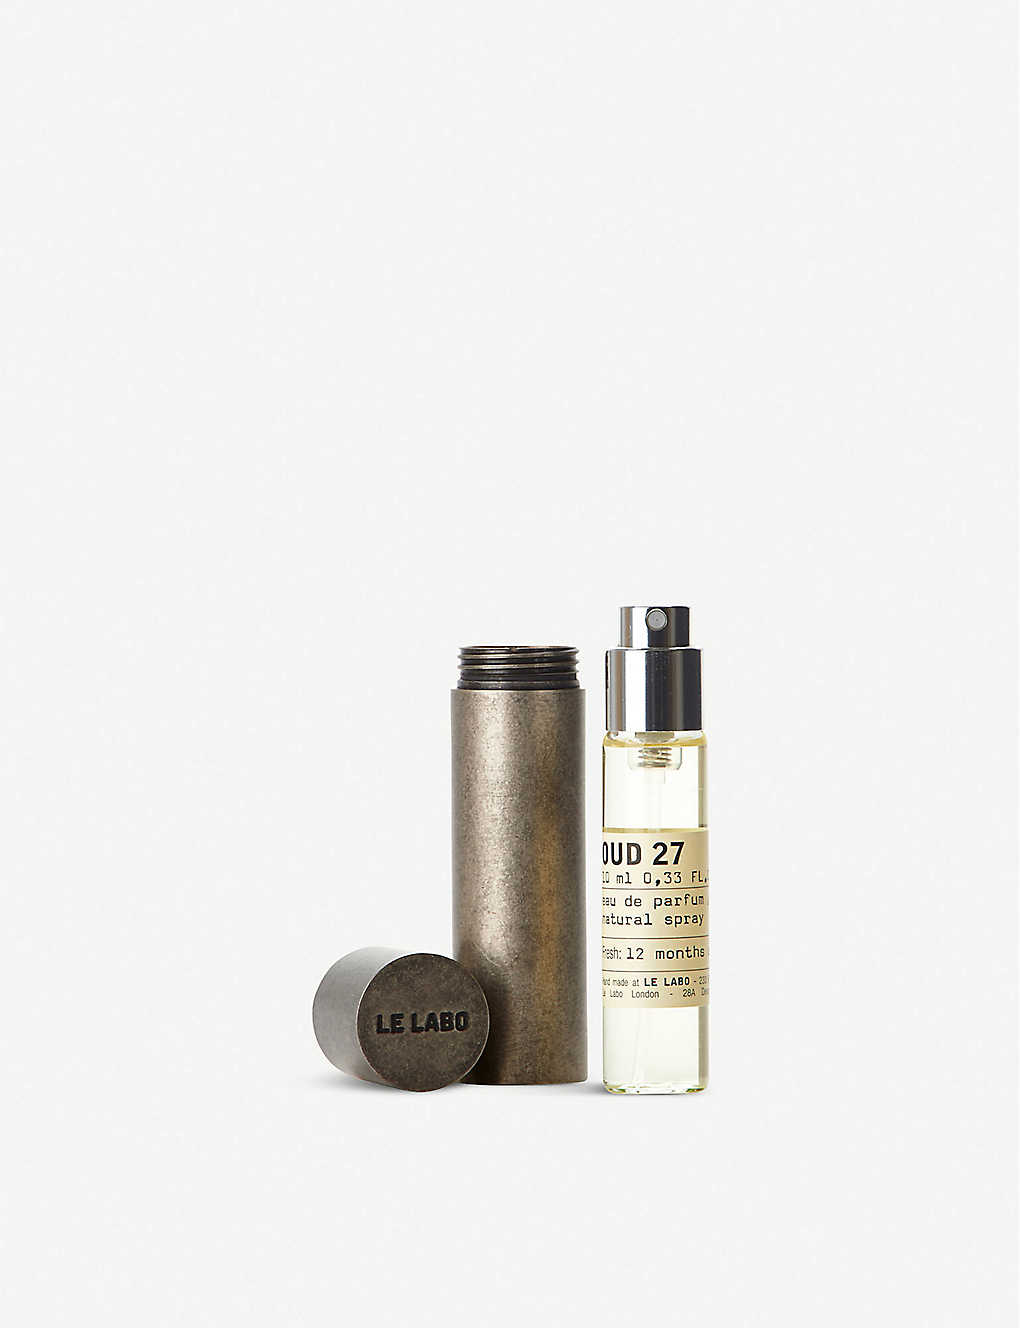 LE LABO: Oud 27 Travel Tube Kit 10ml